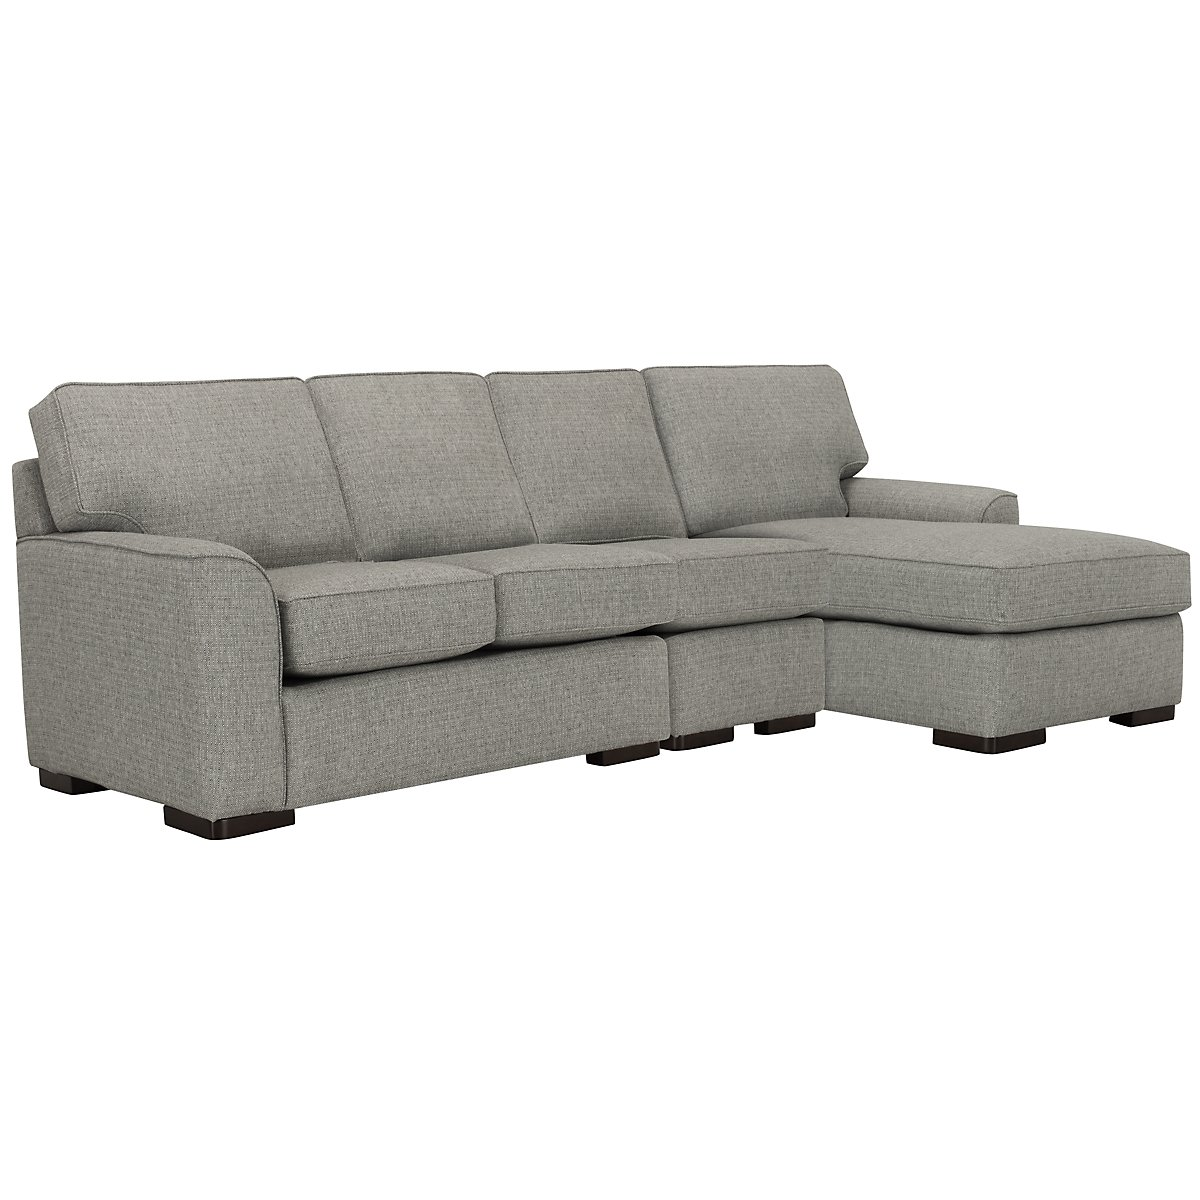 Austin Gray Fabric Small Right Chaise Sectional